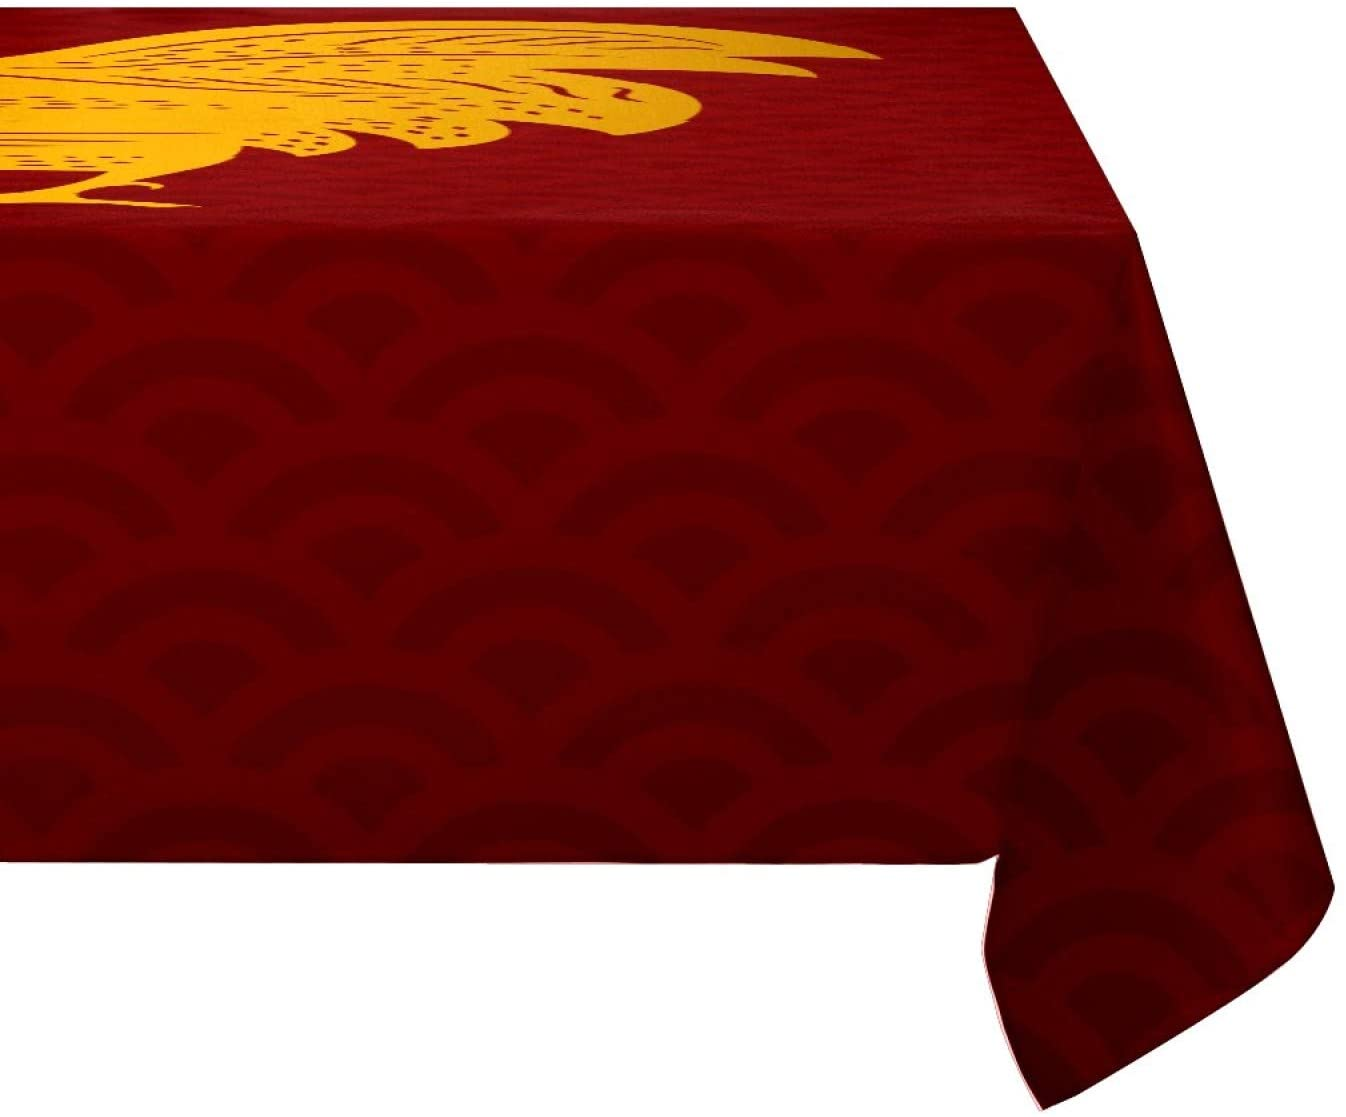 Rectangular Tablecloth Golden Rooster Eco-Friendly Non Wrinkle Washable Table Cover Party Dinner Fesitval Occasions 72x54in